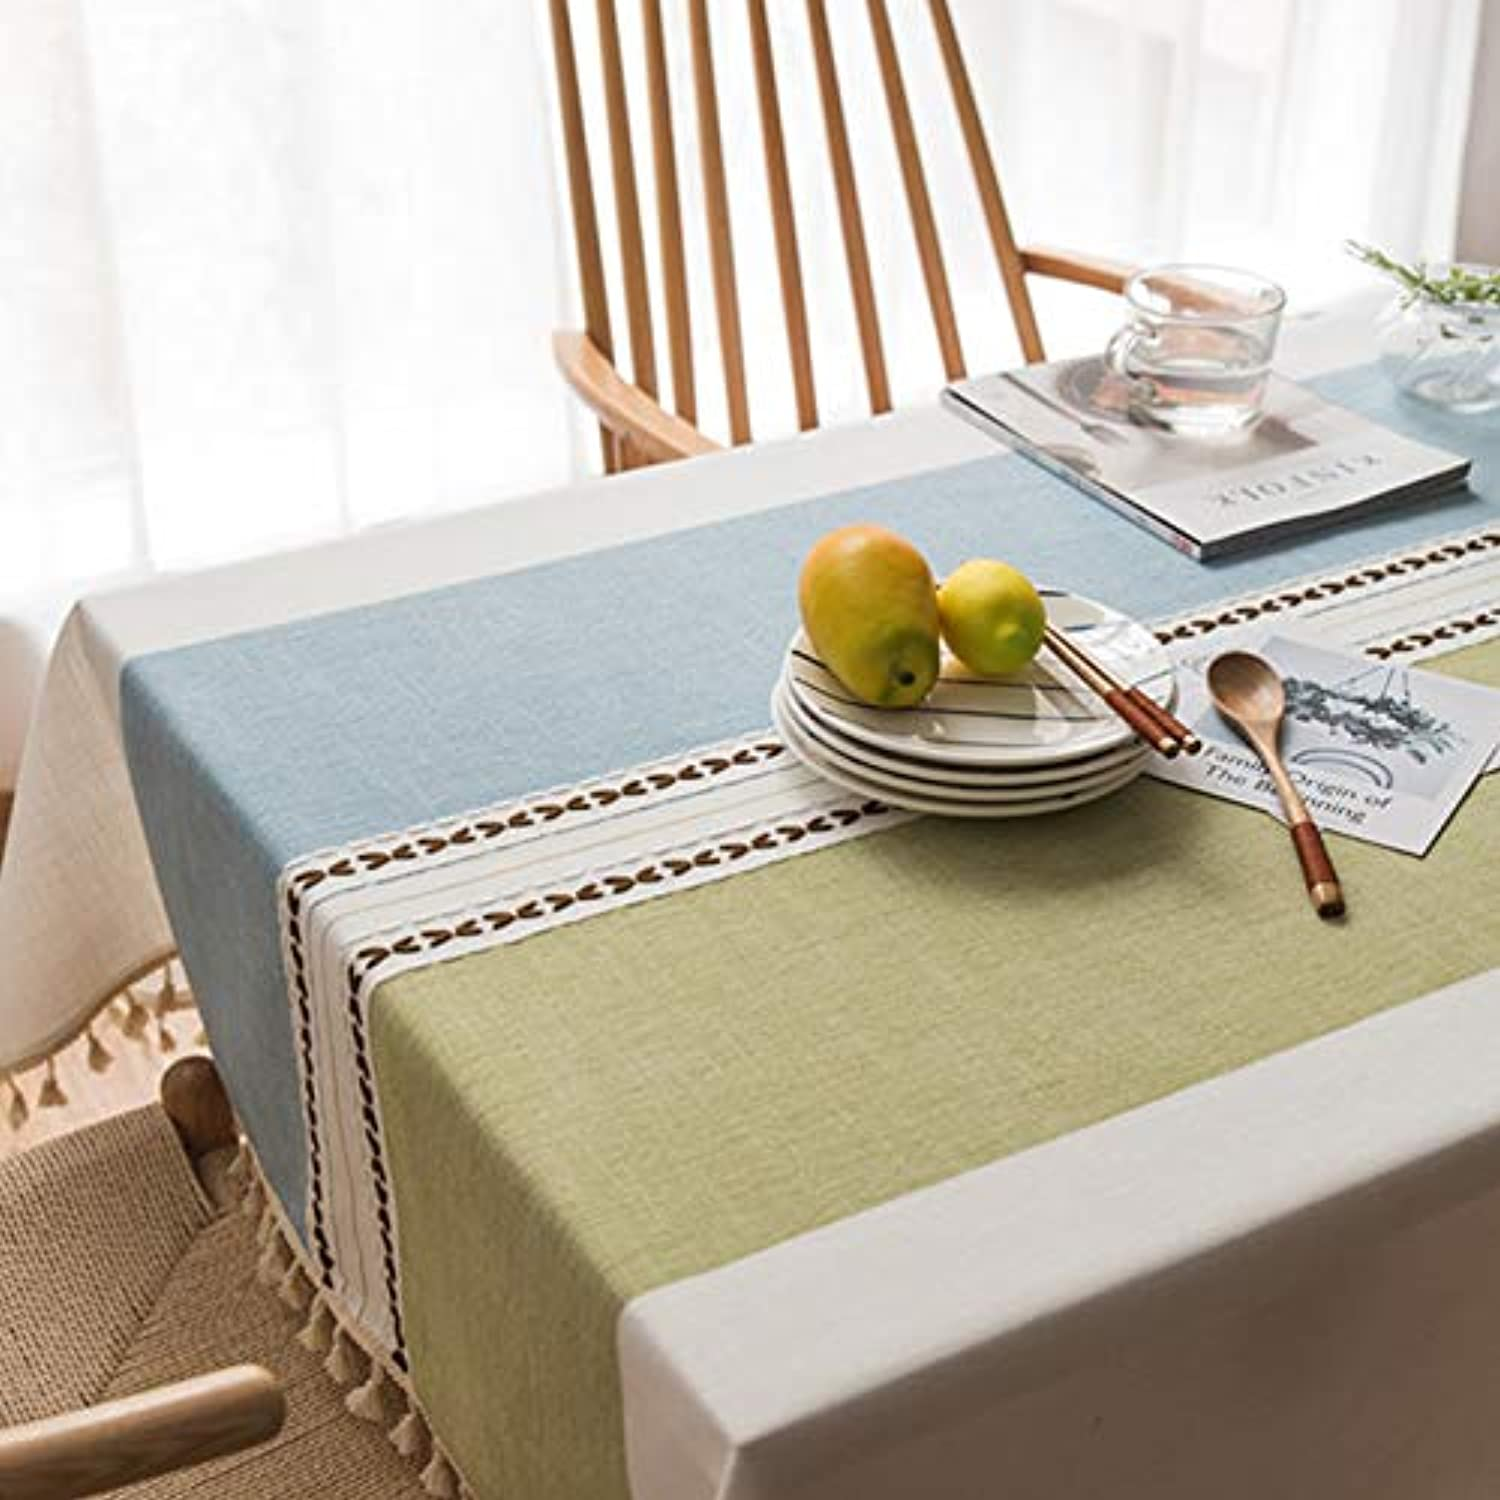 Nordic simple plain plaid fabric tablecloth cotton and linen small fresh rectangular dormitory table cloth coffee table cloth, fabric tablecloth  bluee and green lines tassel, 135135cm suitable squa